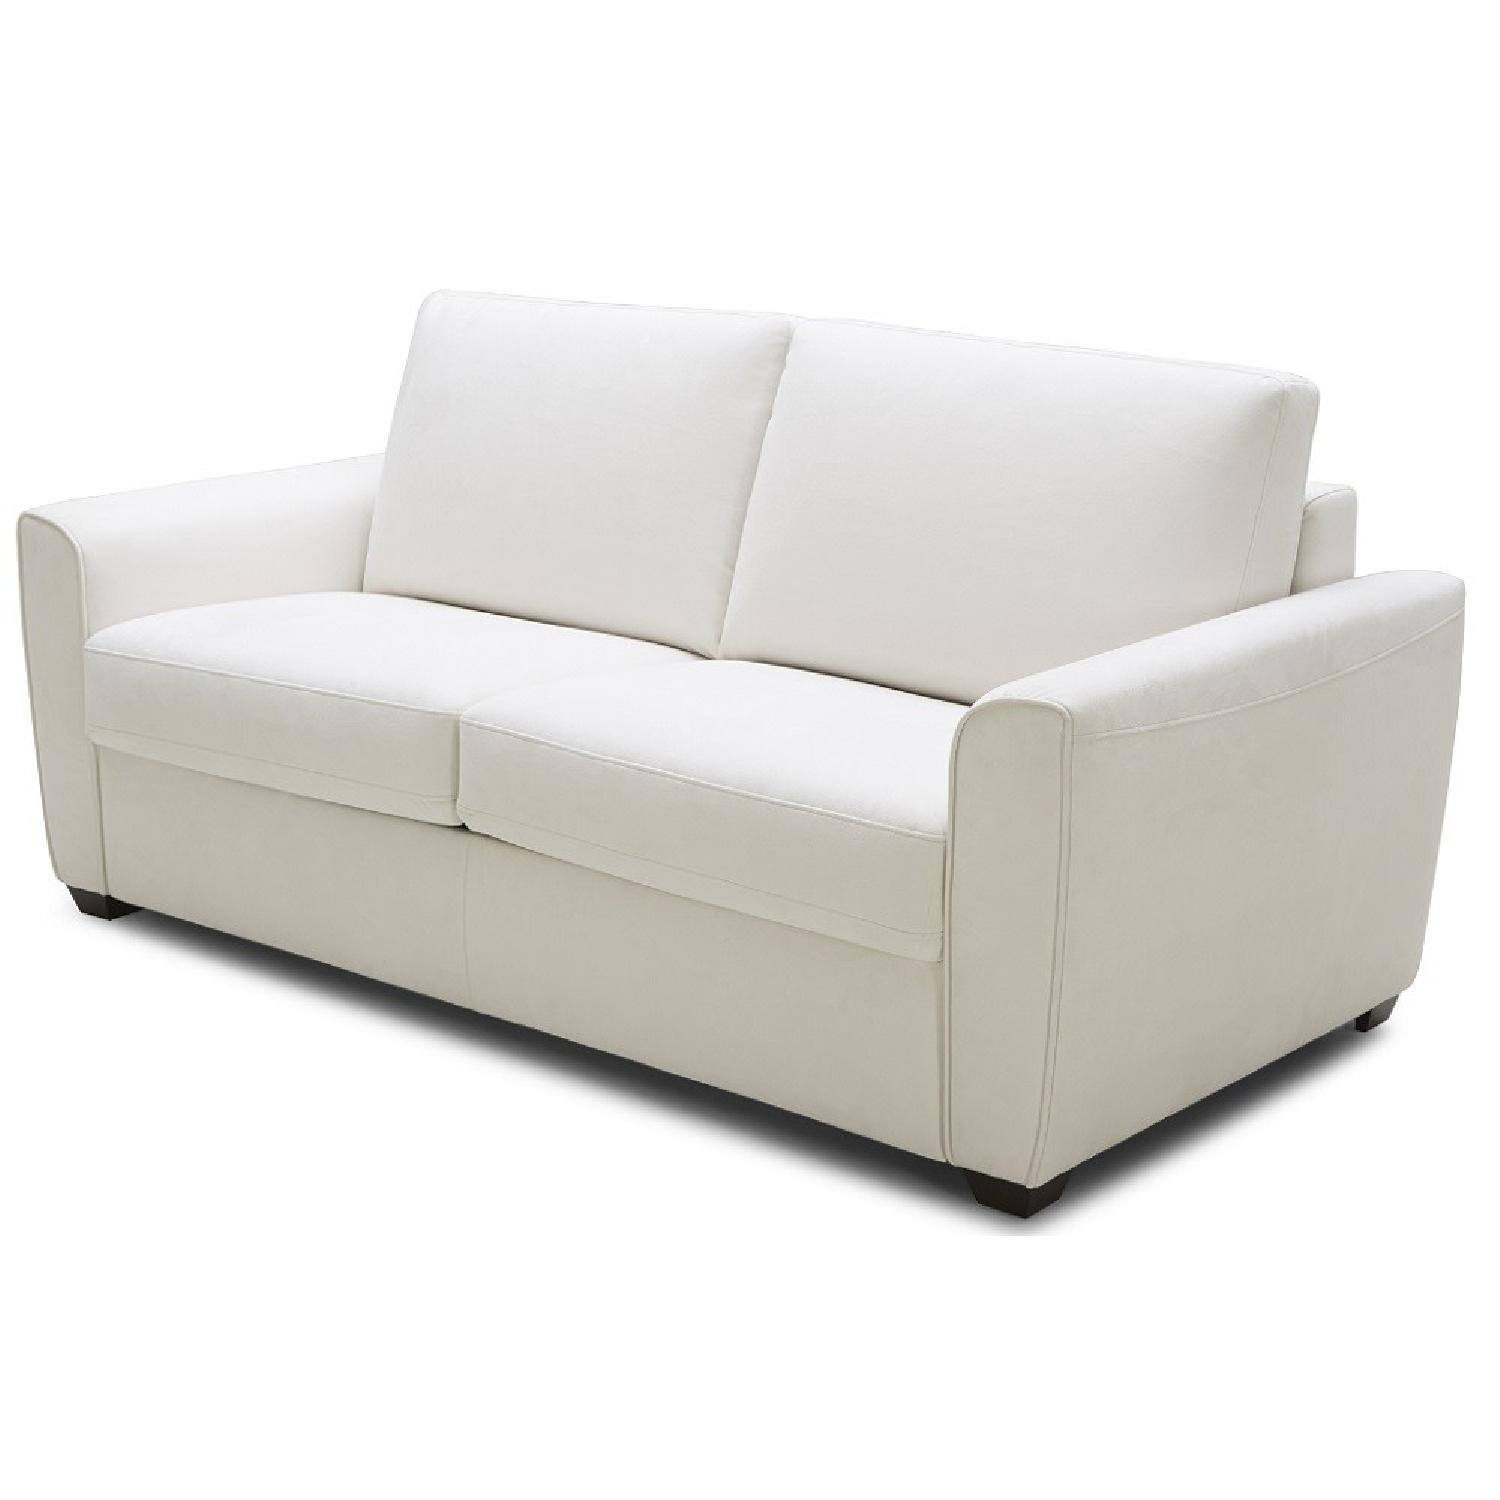 White Sofa Bed - image-1